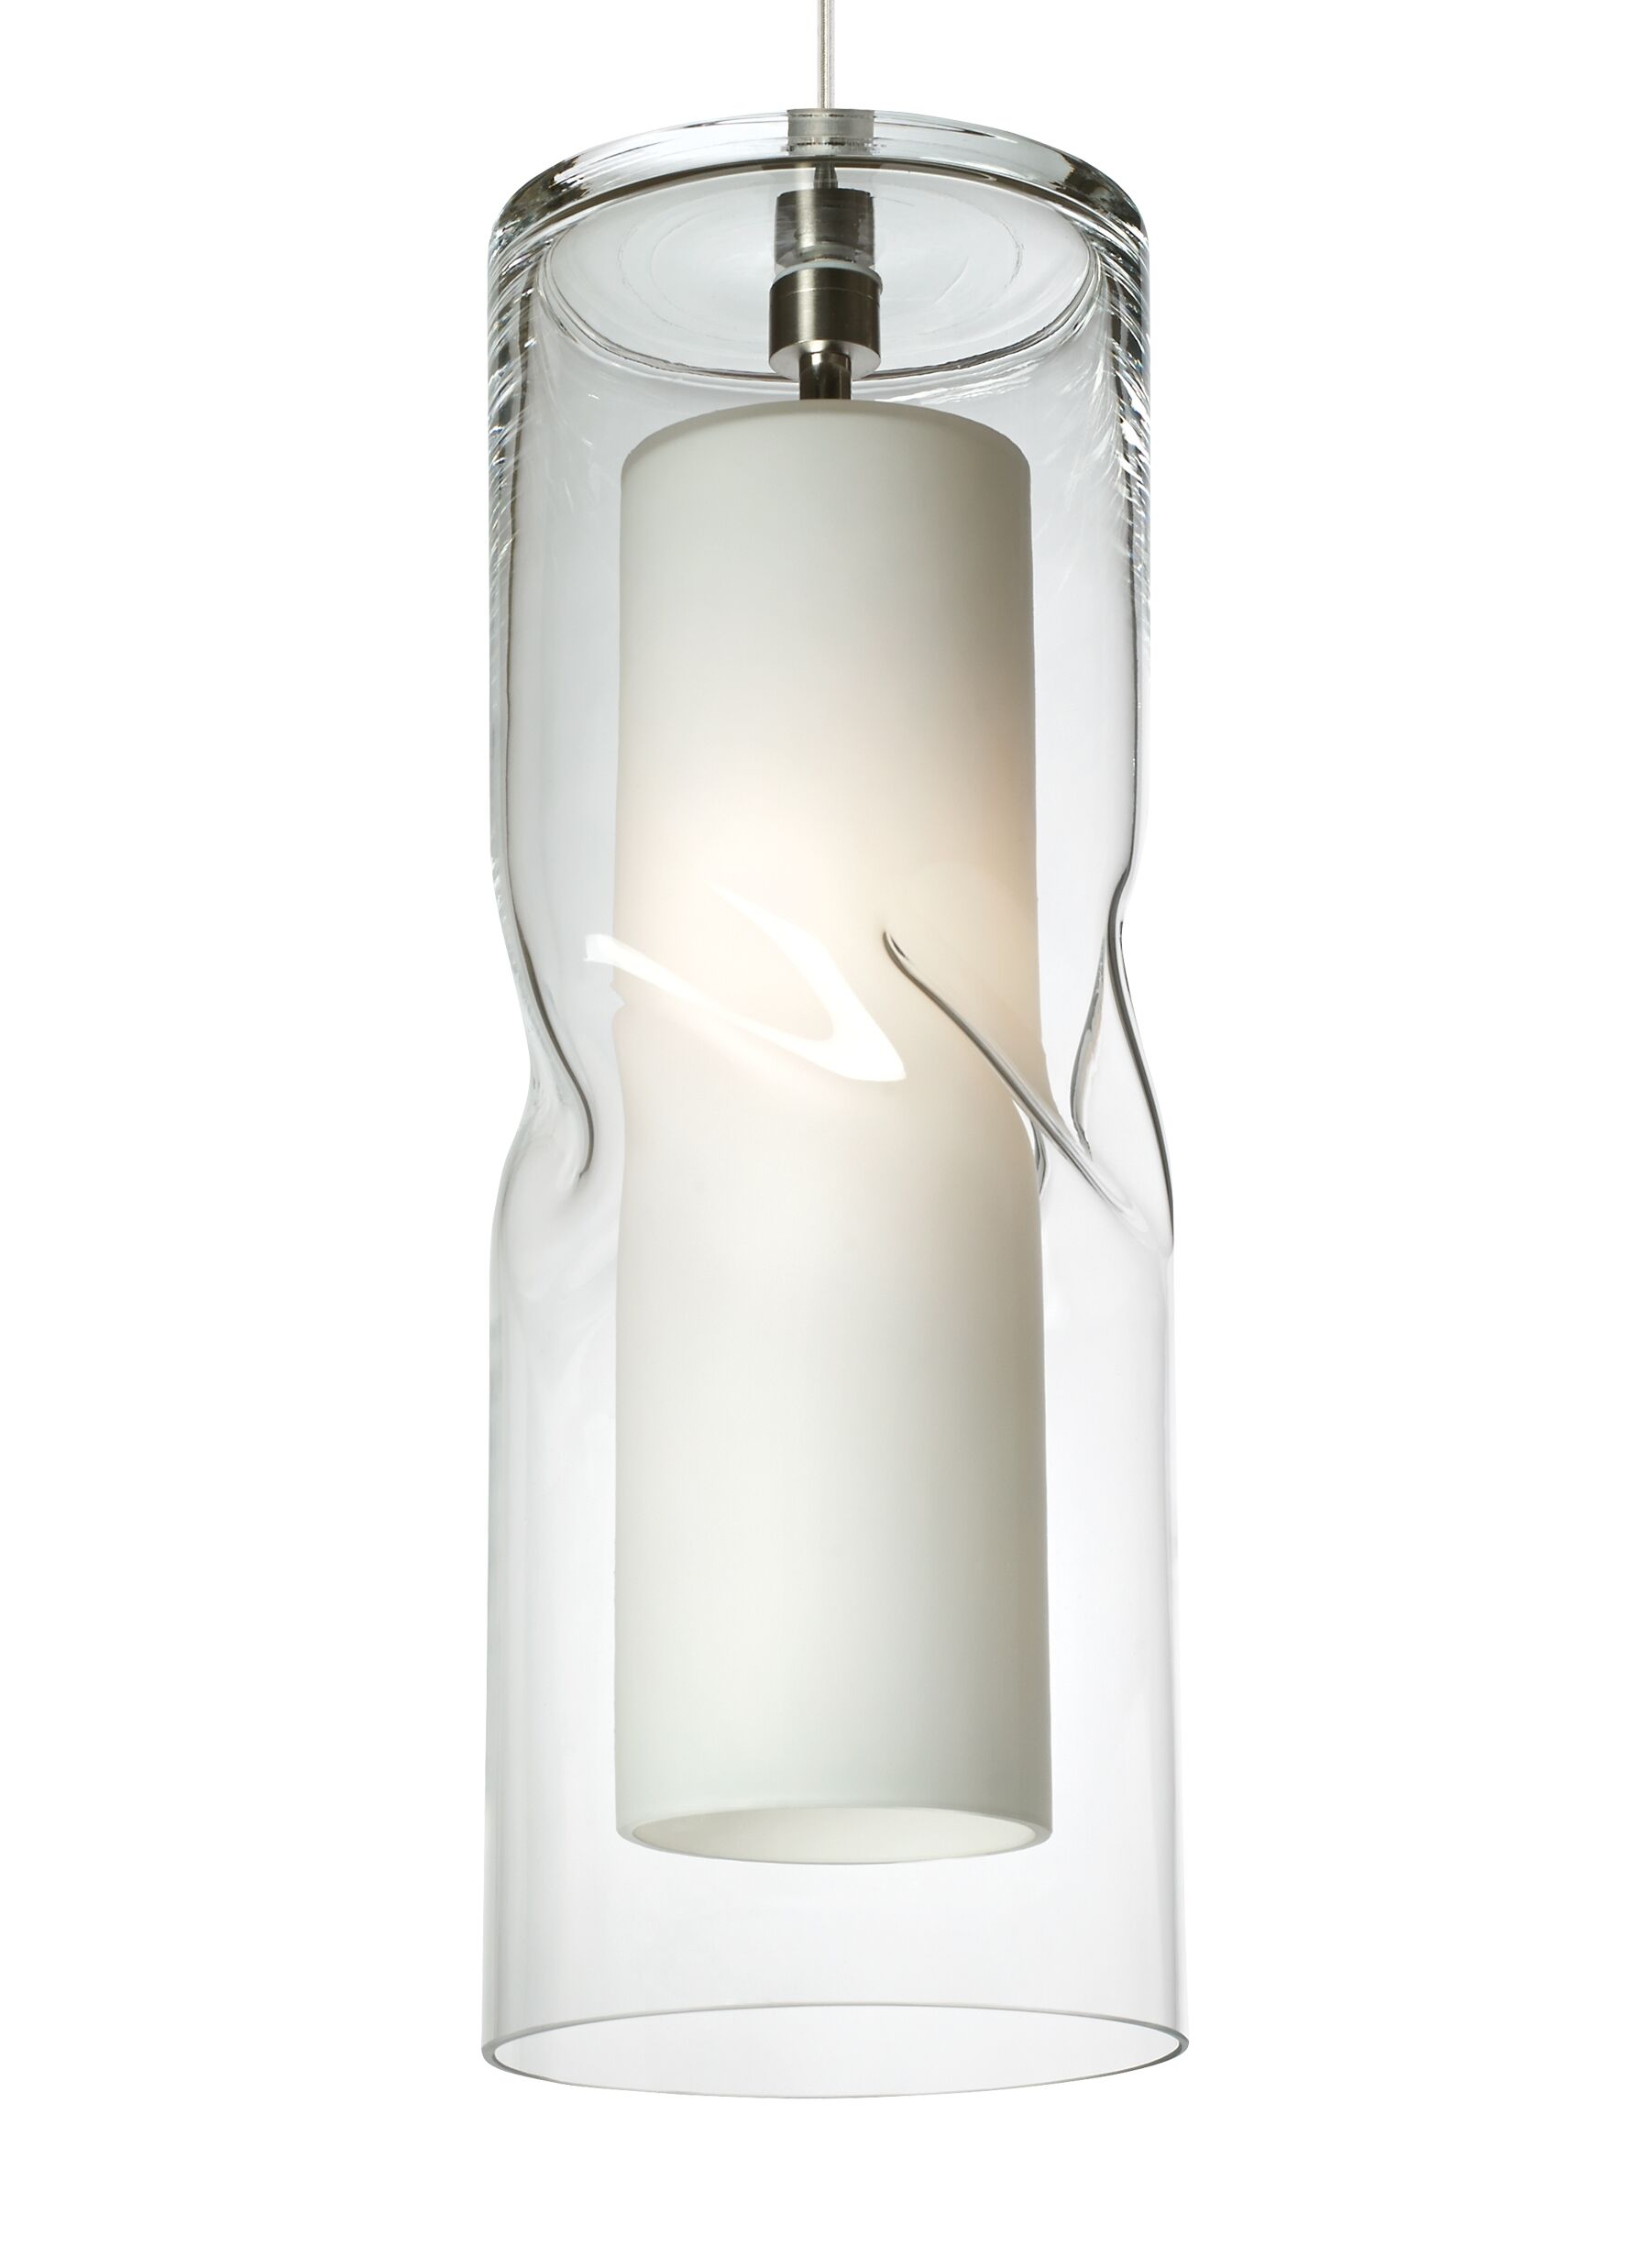 Mcculley 1-Light Cylinder Pendant Finish: Bronze, Shade Color: Clear, Bulb Type: Incandescent 277V